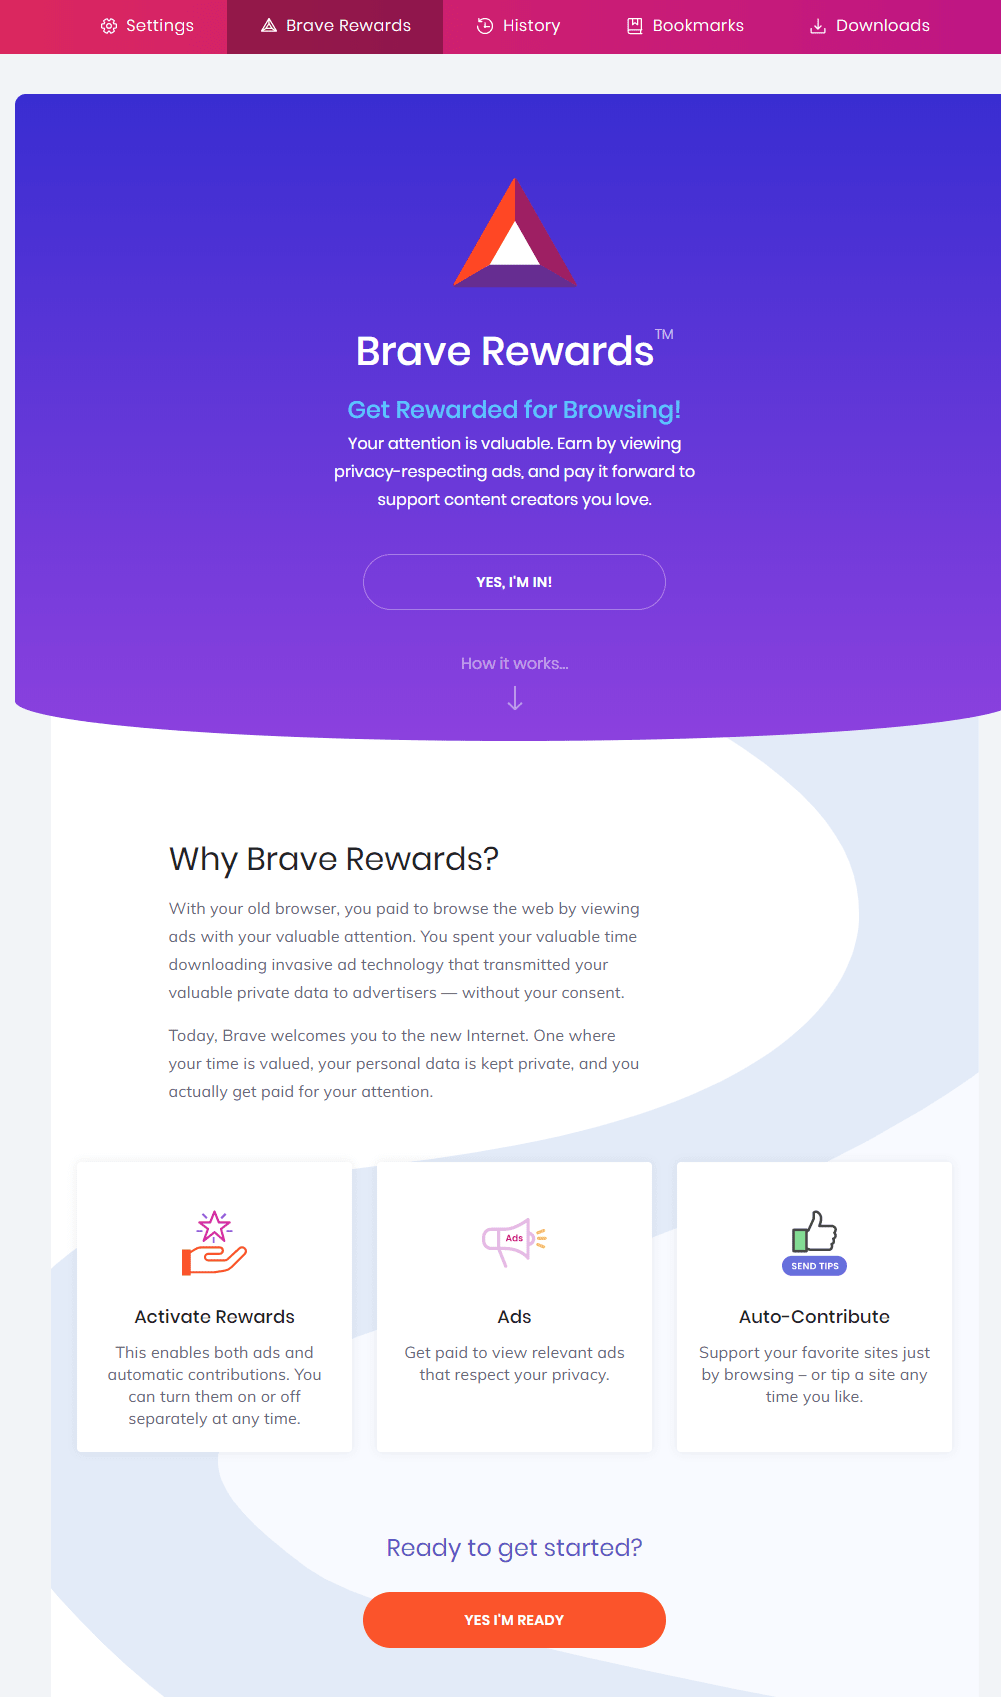 Learn How Brave Rewards Works